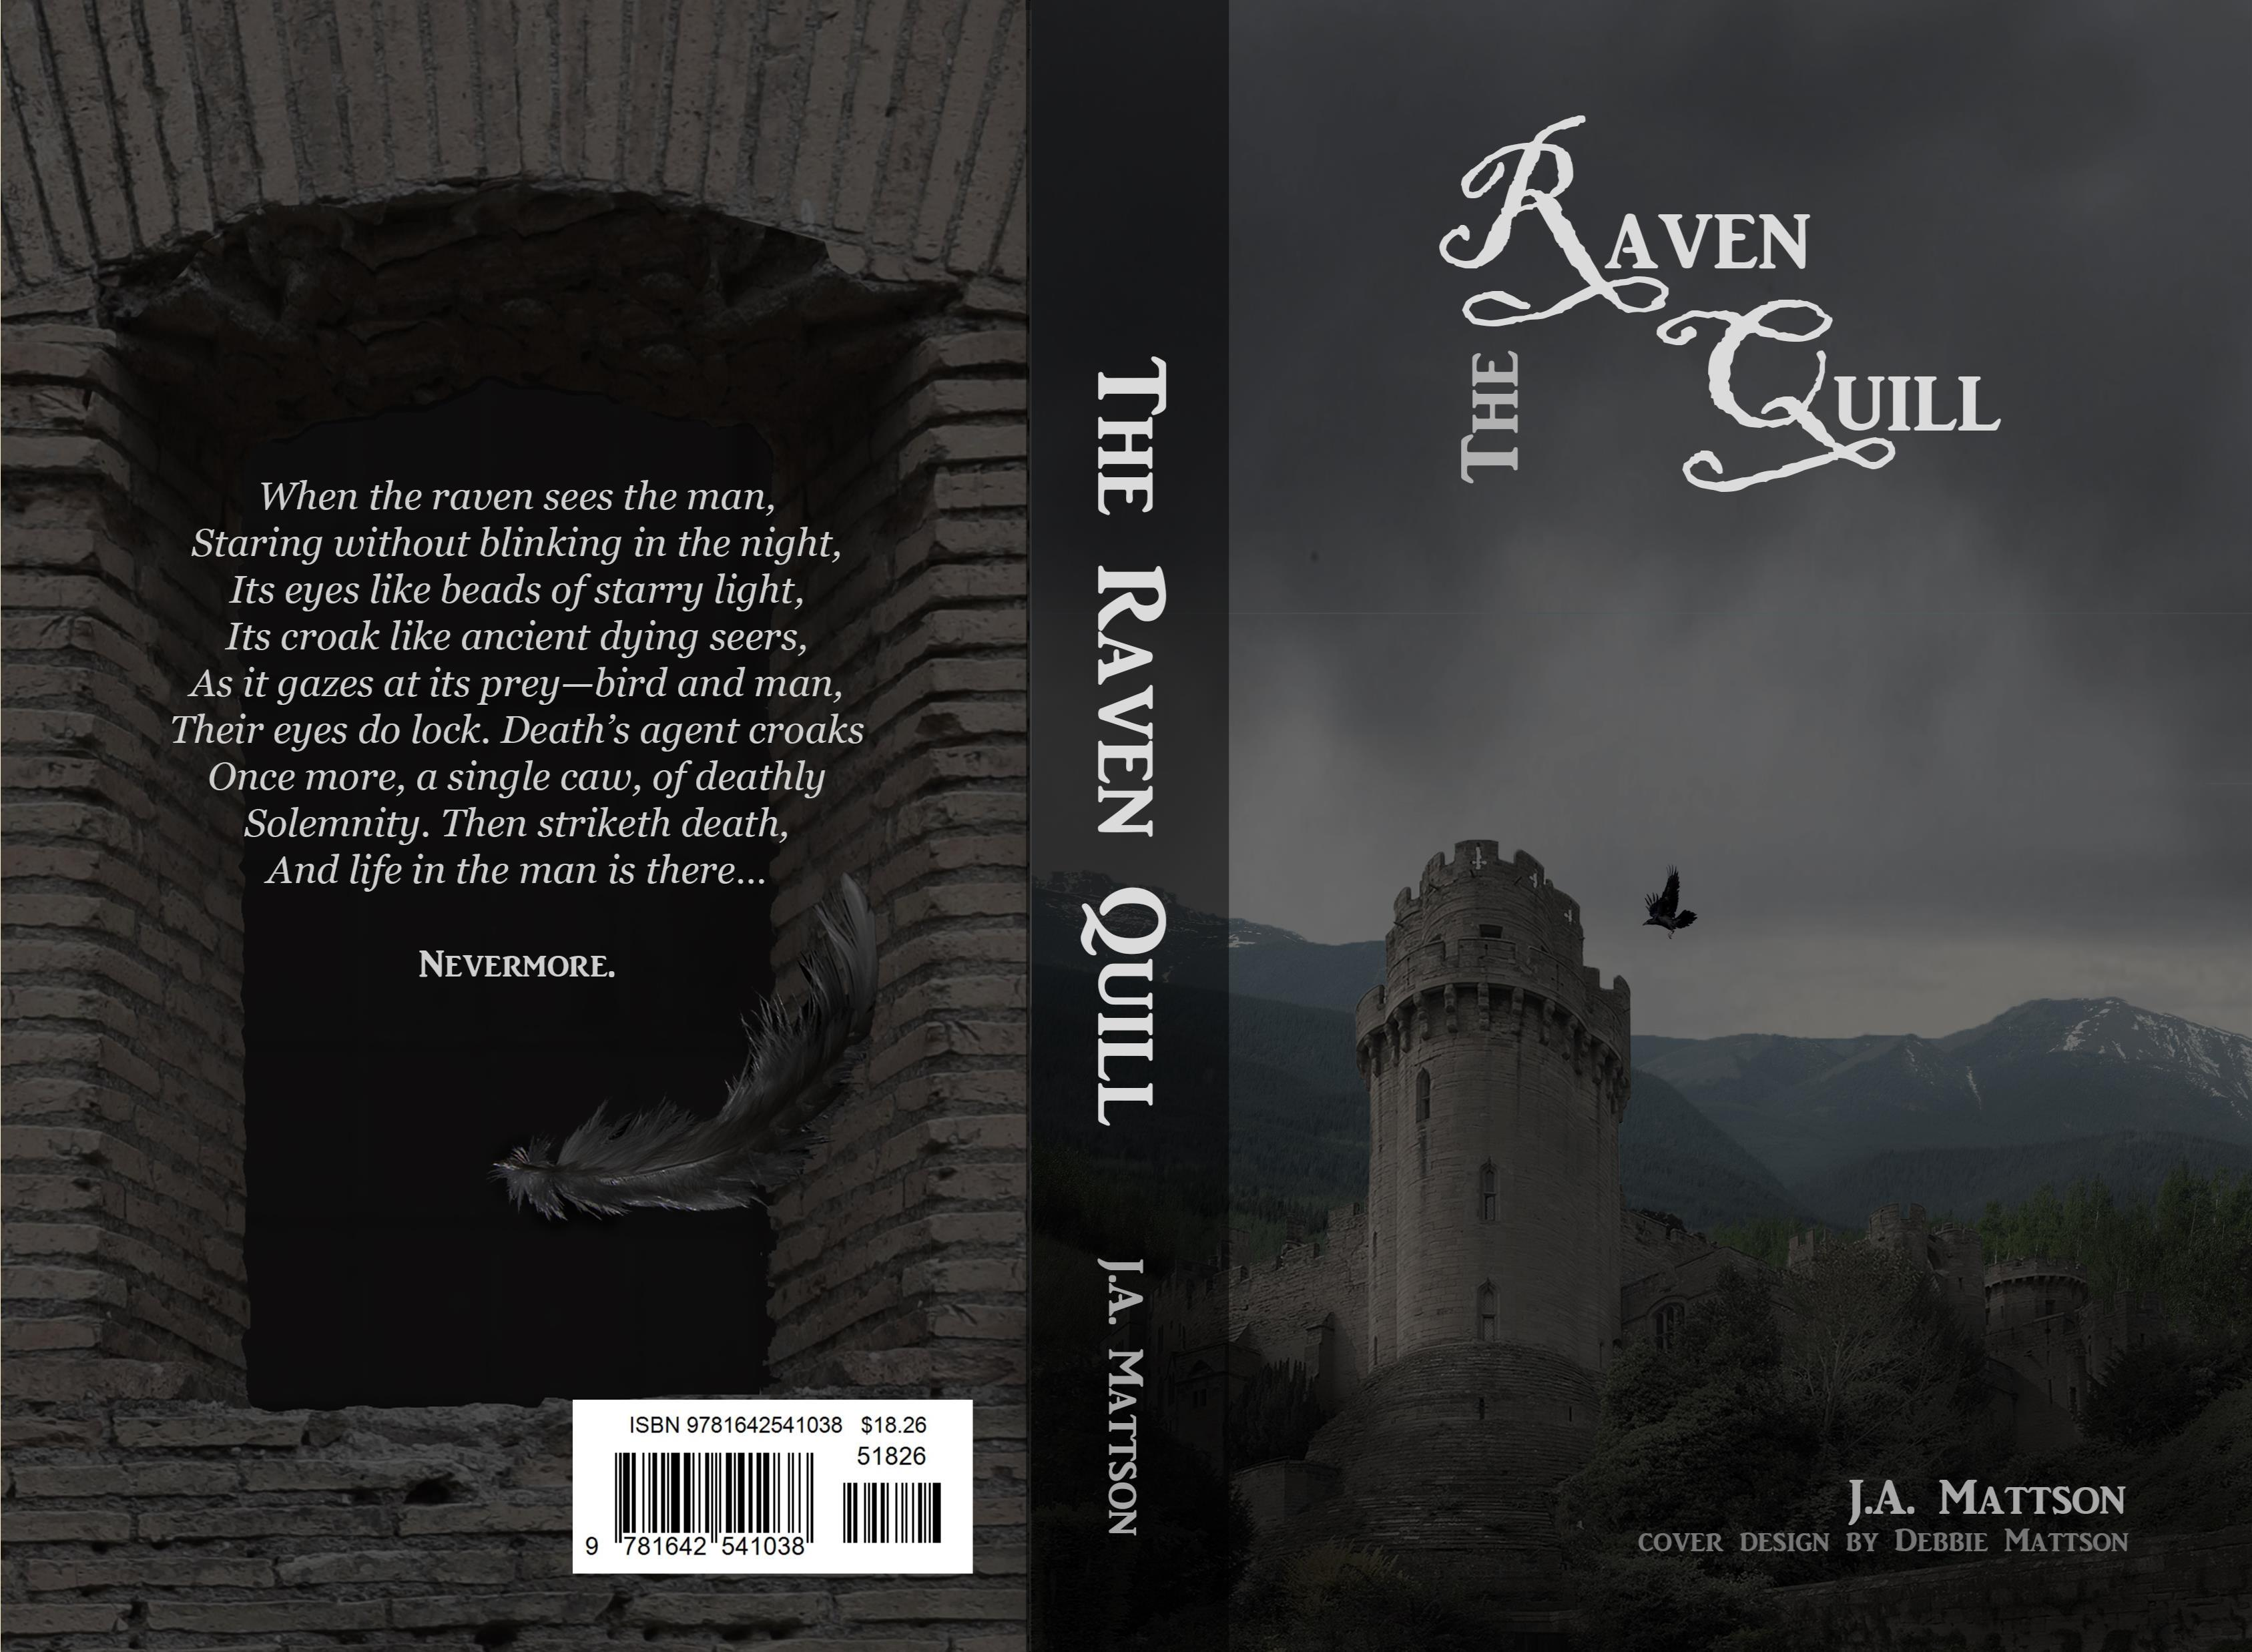 The Raven Quill: The Adventures of the Prince at the Monastery (Second Edition) cover image